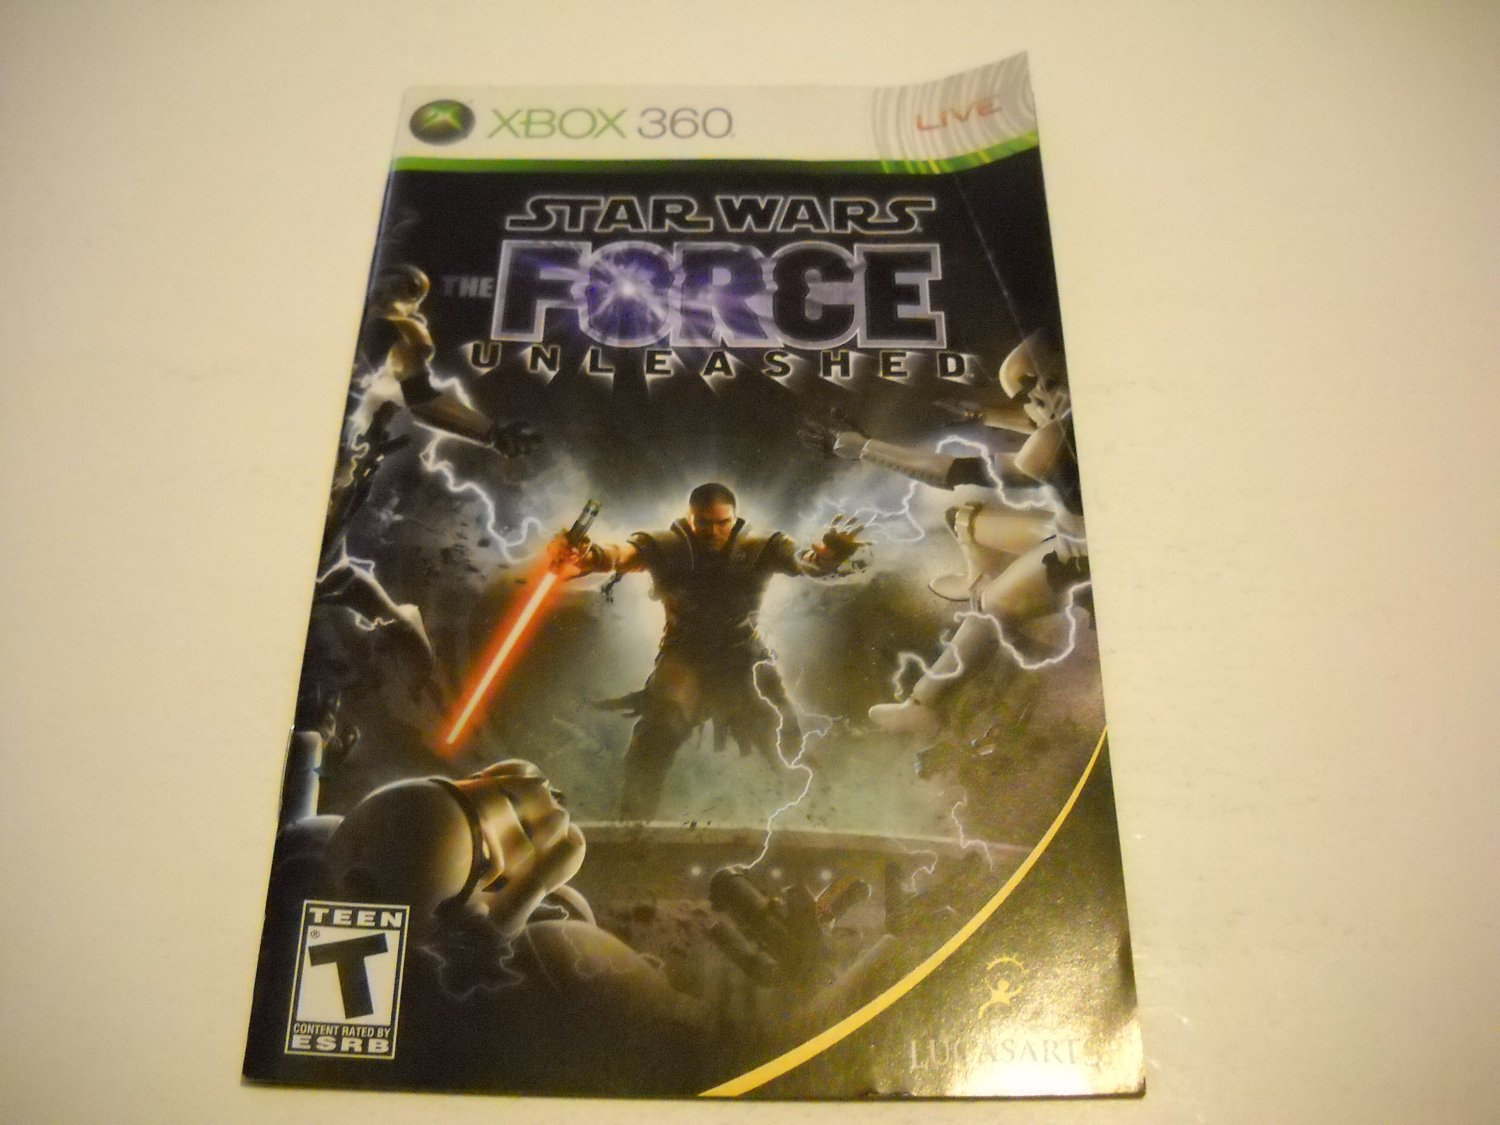 Manual ONLY ~  for Star Wars The Force Unleashed   - Xbox 360 Instruction Booklet